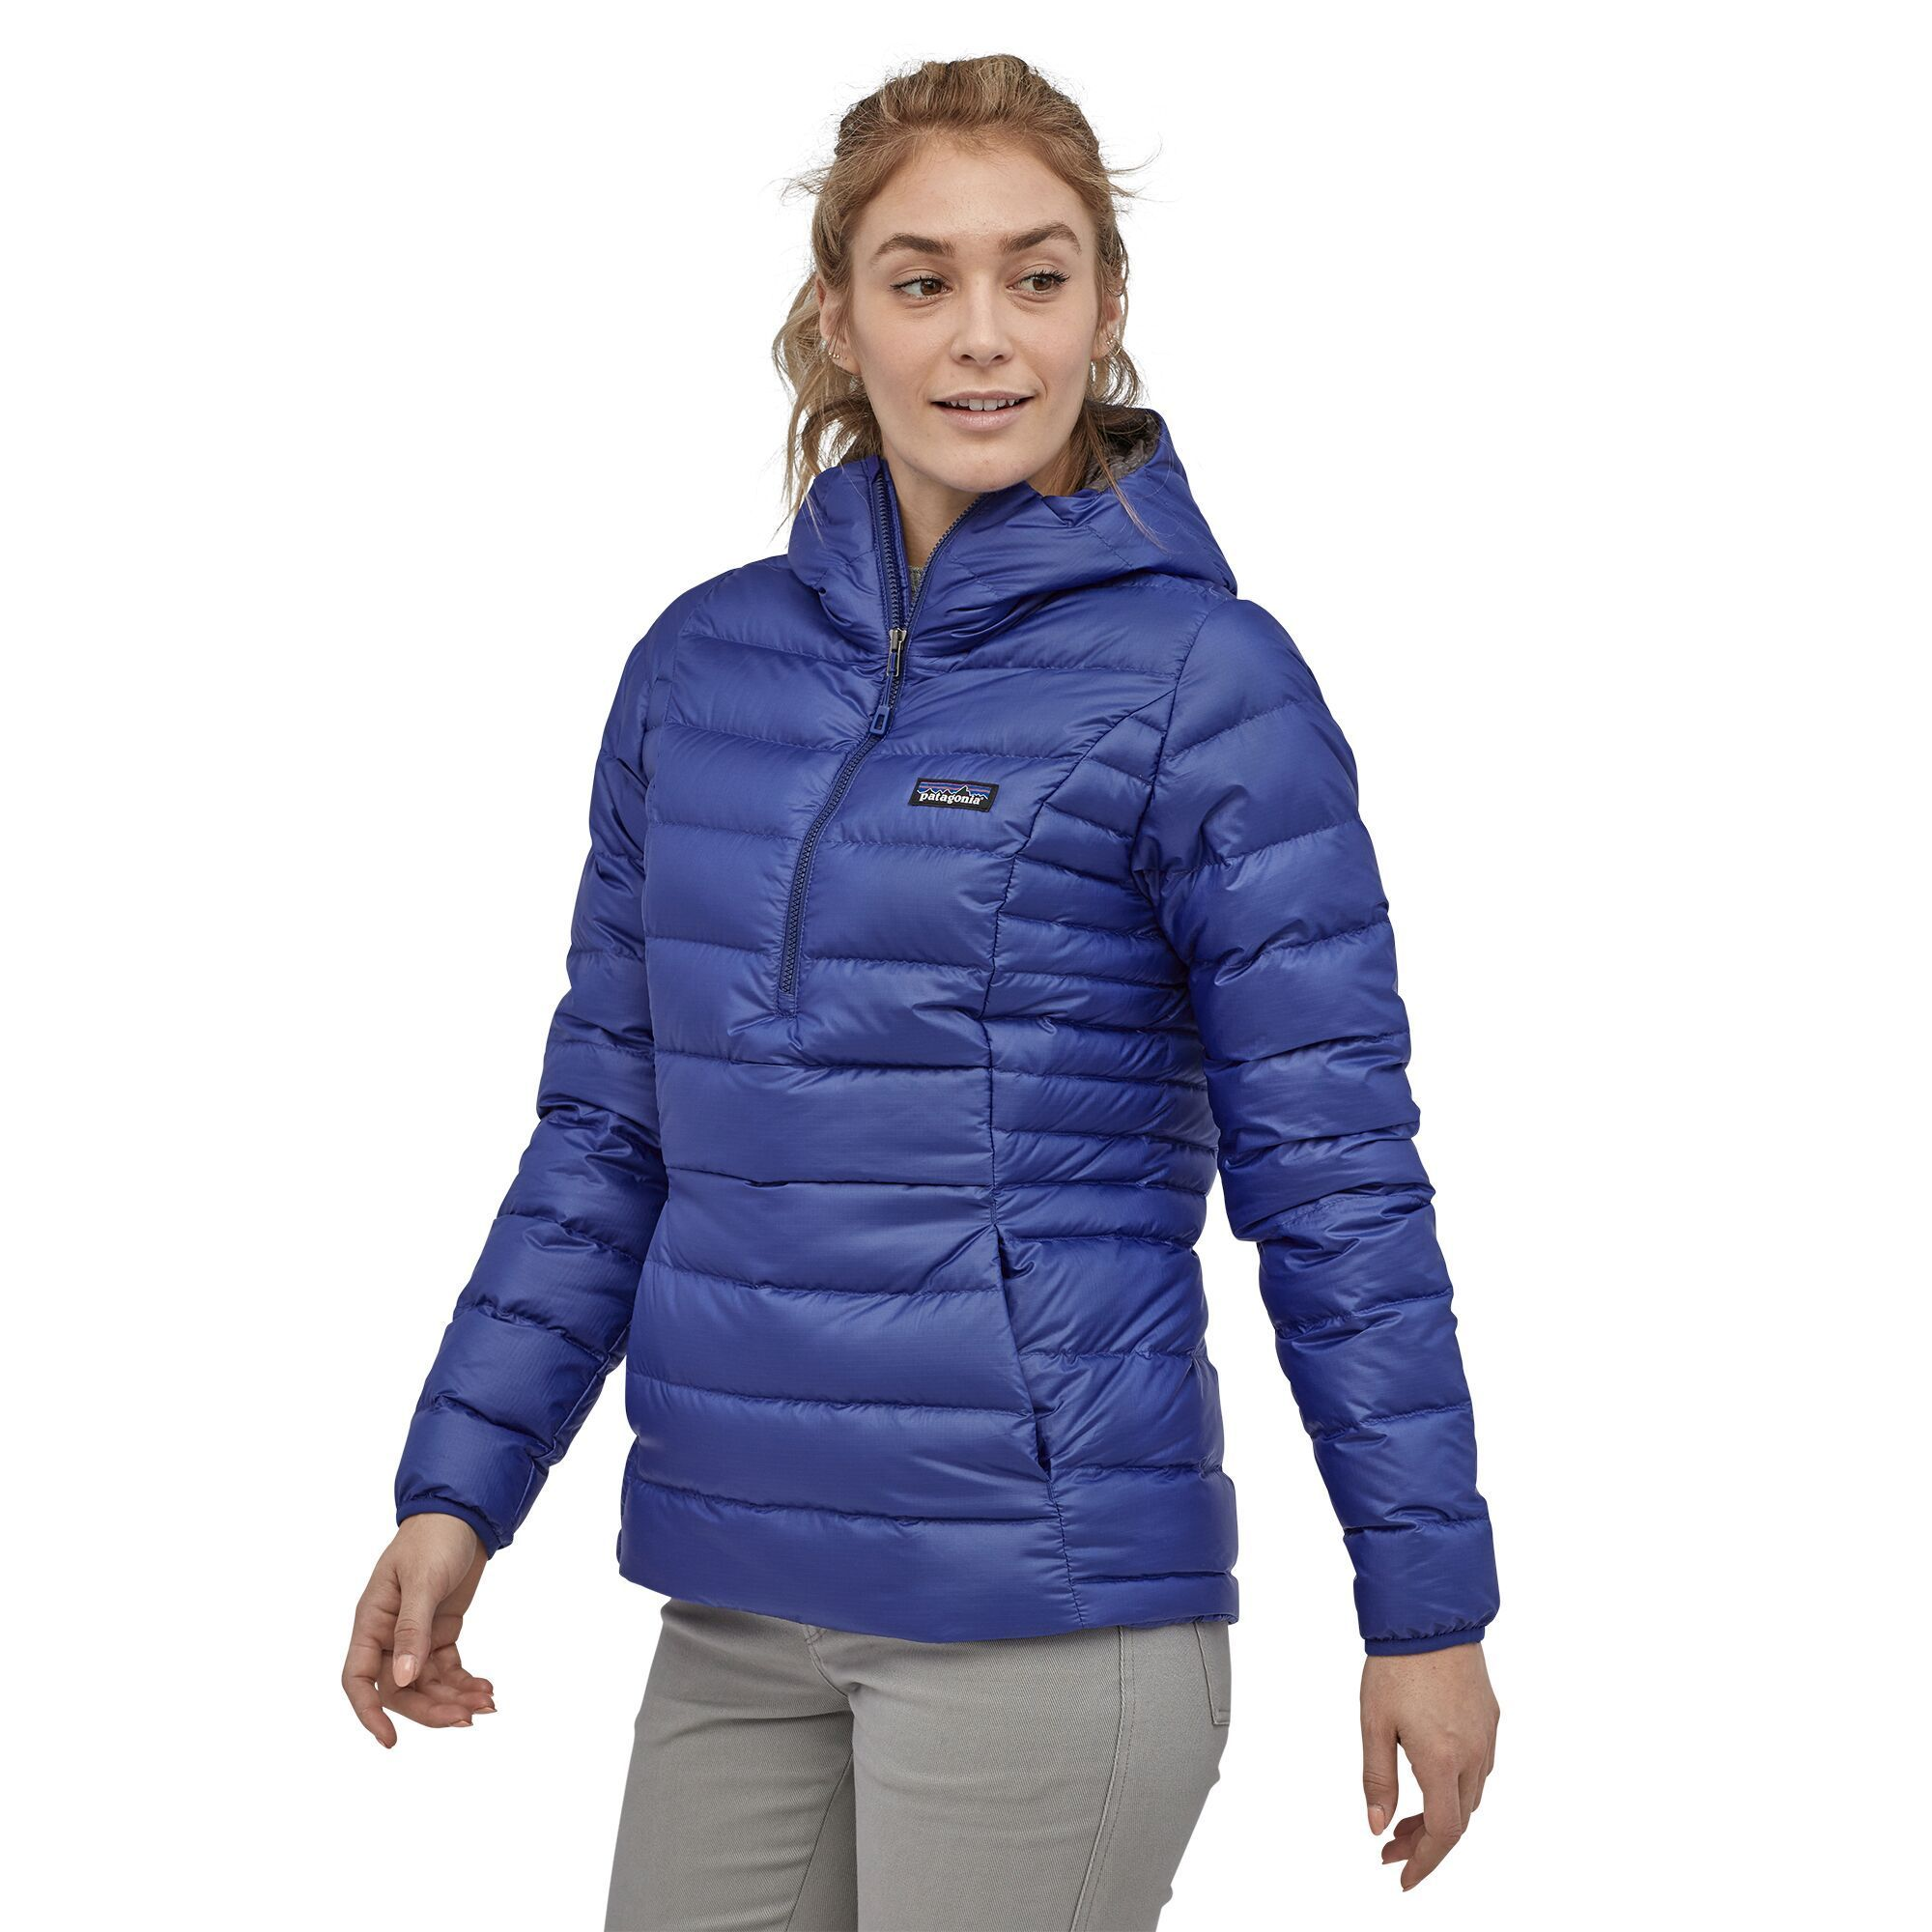 Patagonia - W's Down Sweater Hoody Pullover - Ethical Down - Weekendbee - sustainable sportswear